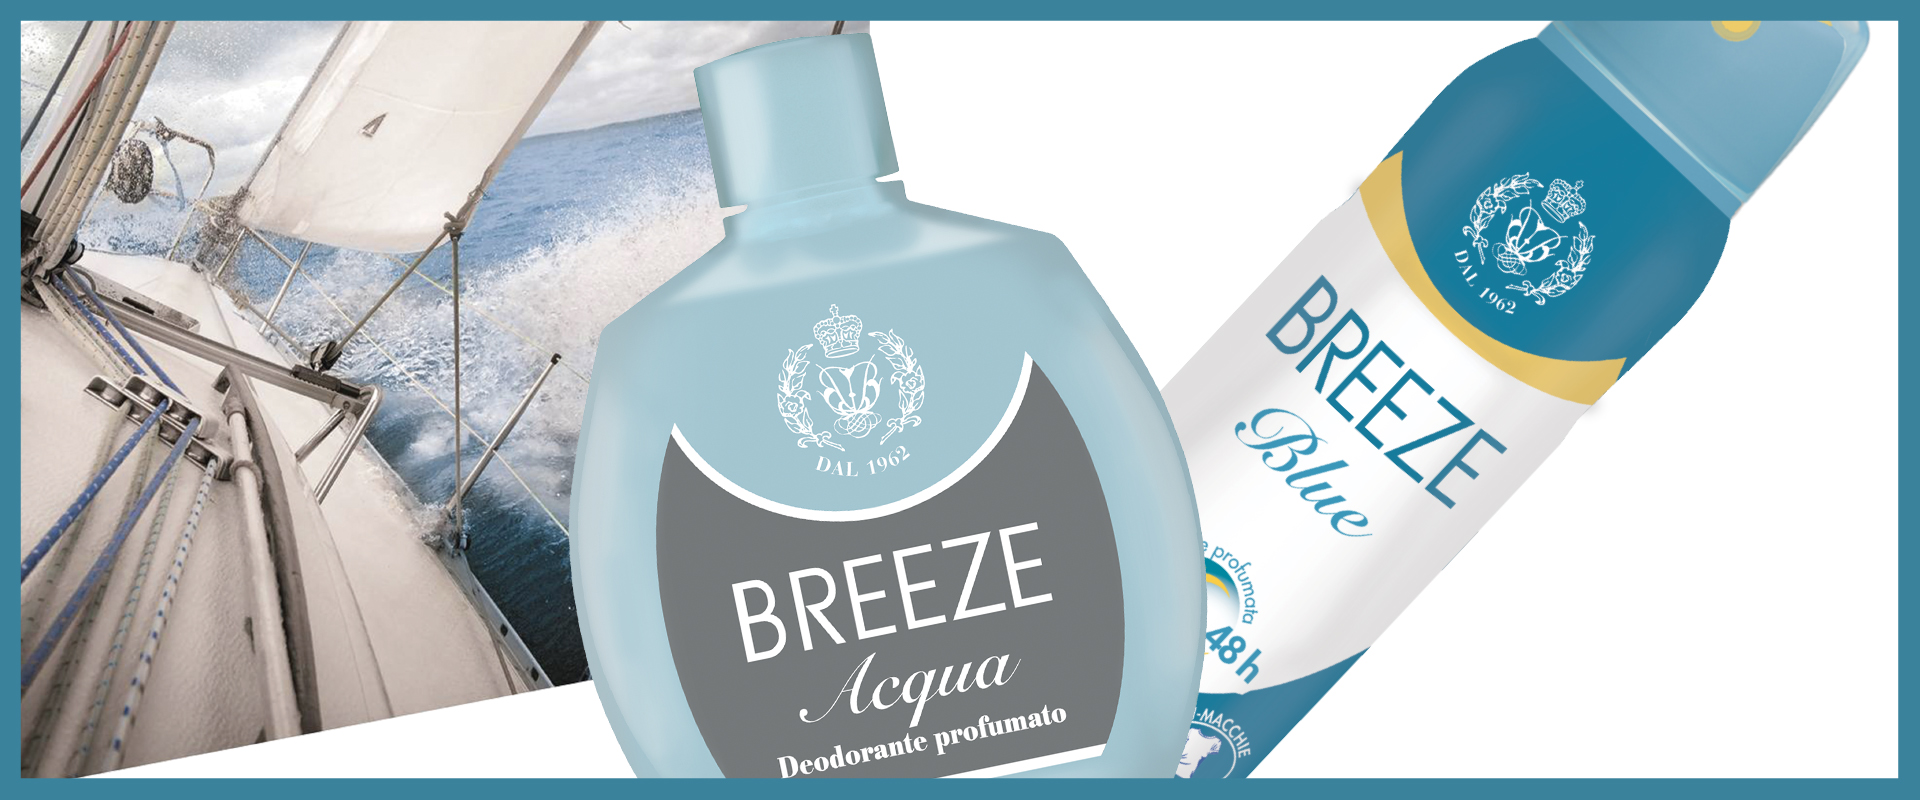 Breeze acqua blue